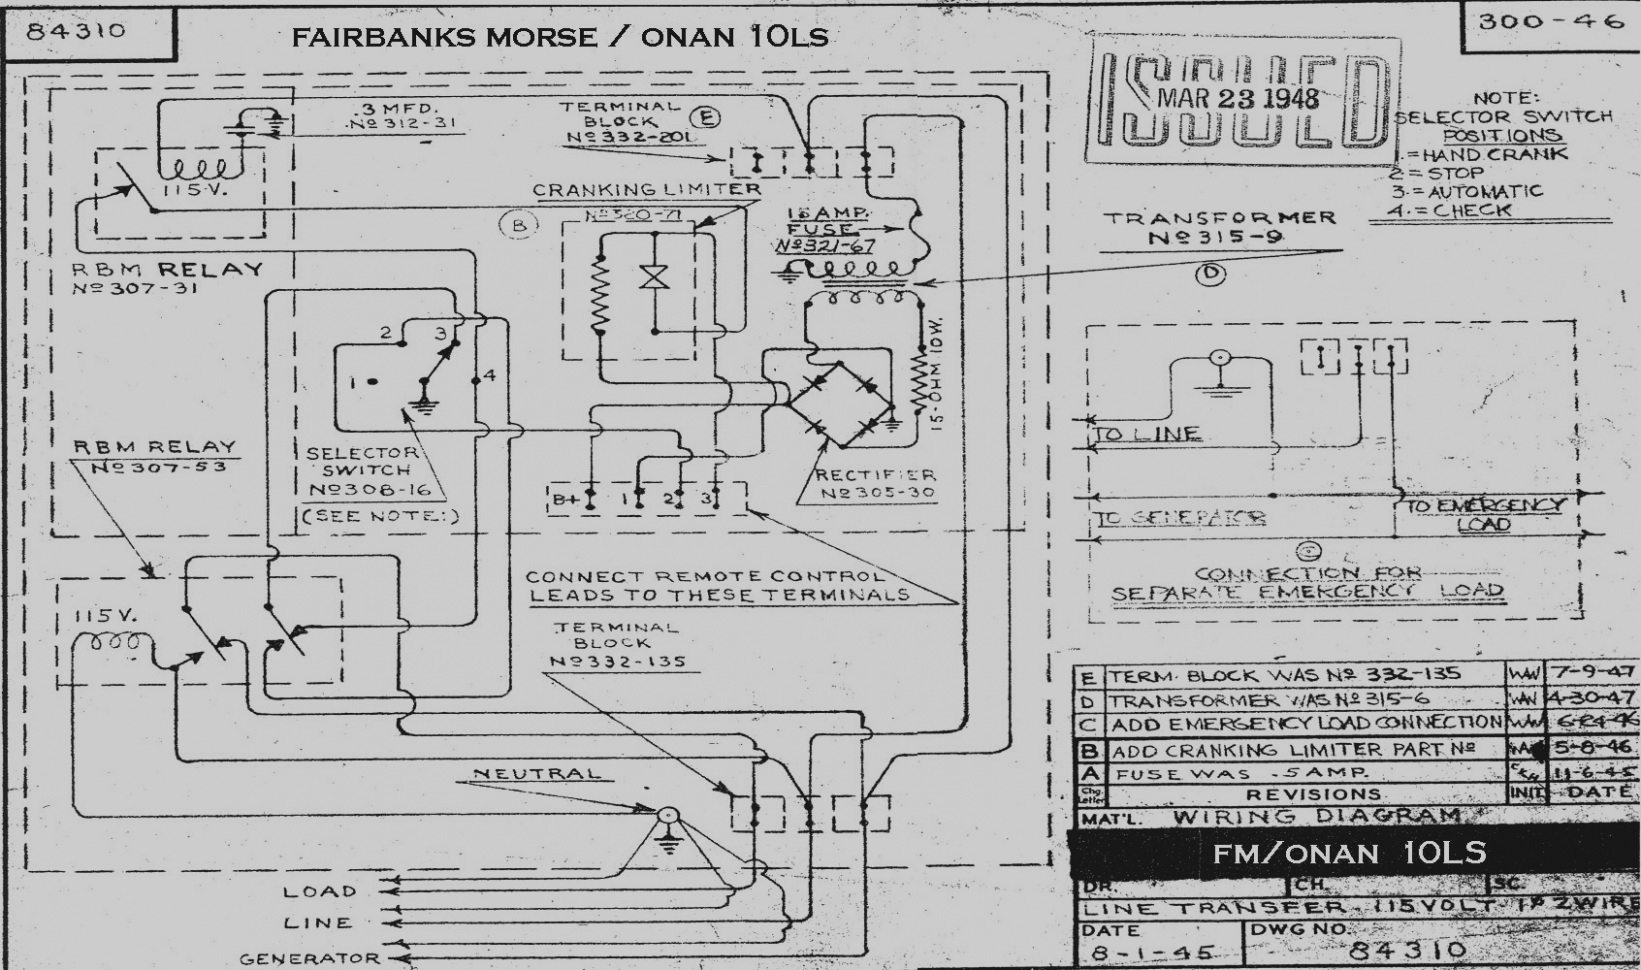 onan marquis 7000 parts diagram wiring diagram services u2022 rh wiringdiagramguide services onan parts manual pdf onan parts manual